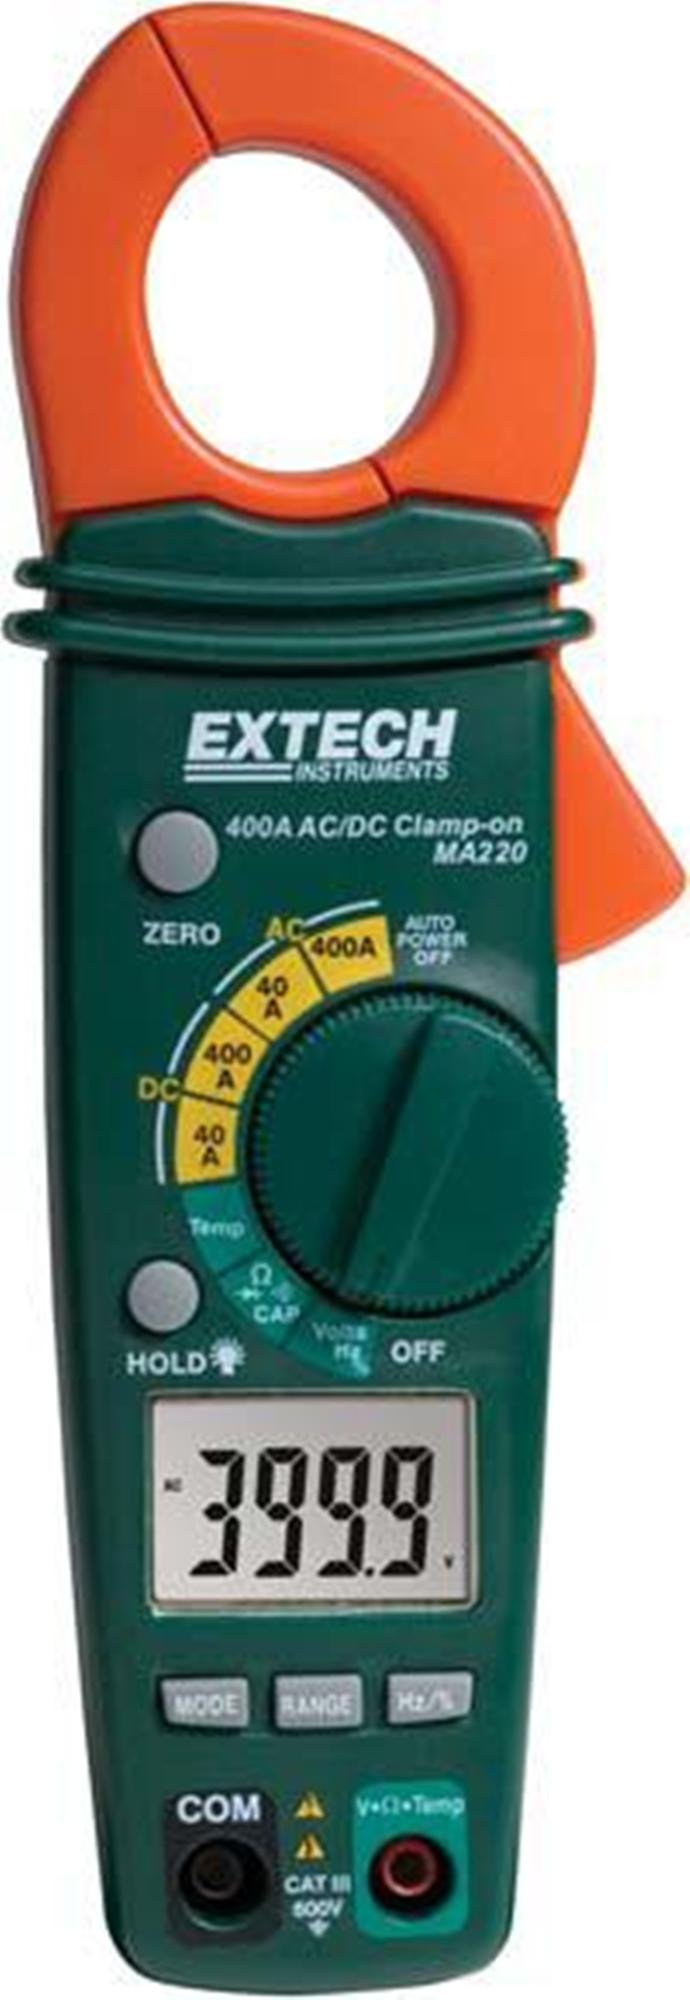 Extech MA220 Compact Clamp Meter